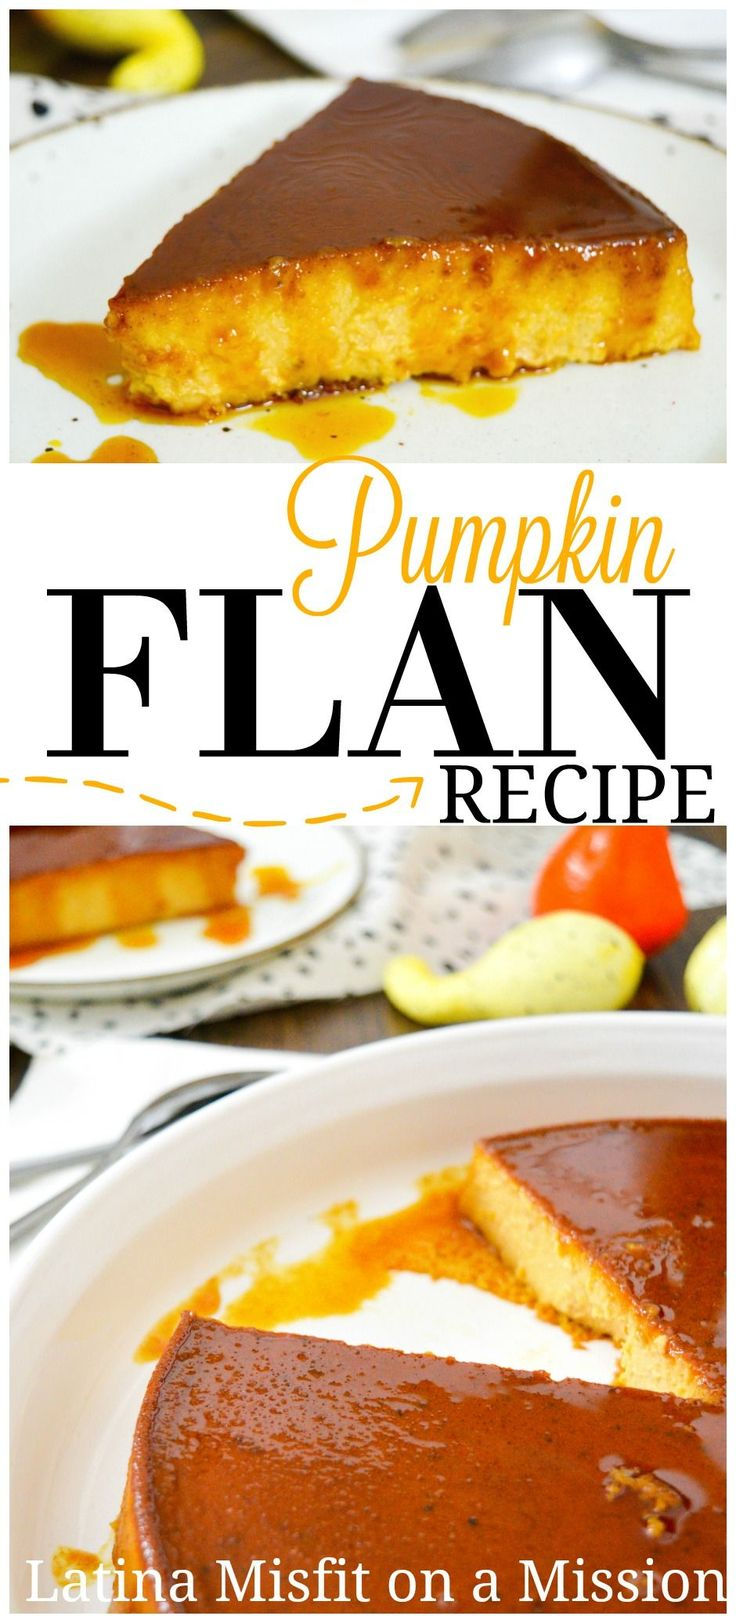 How to make cream cheese pumpkin flan